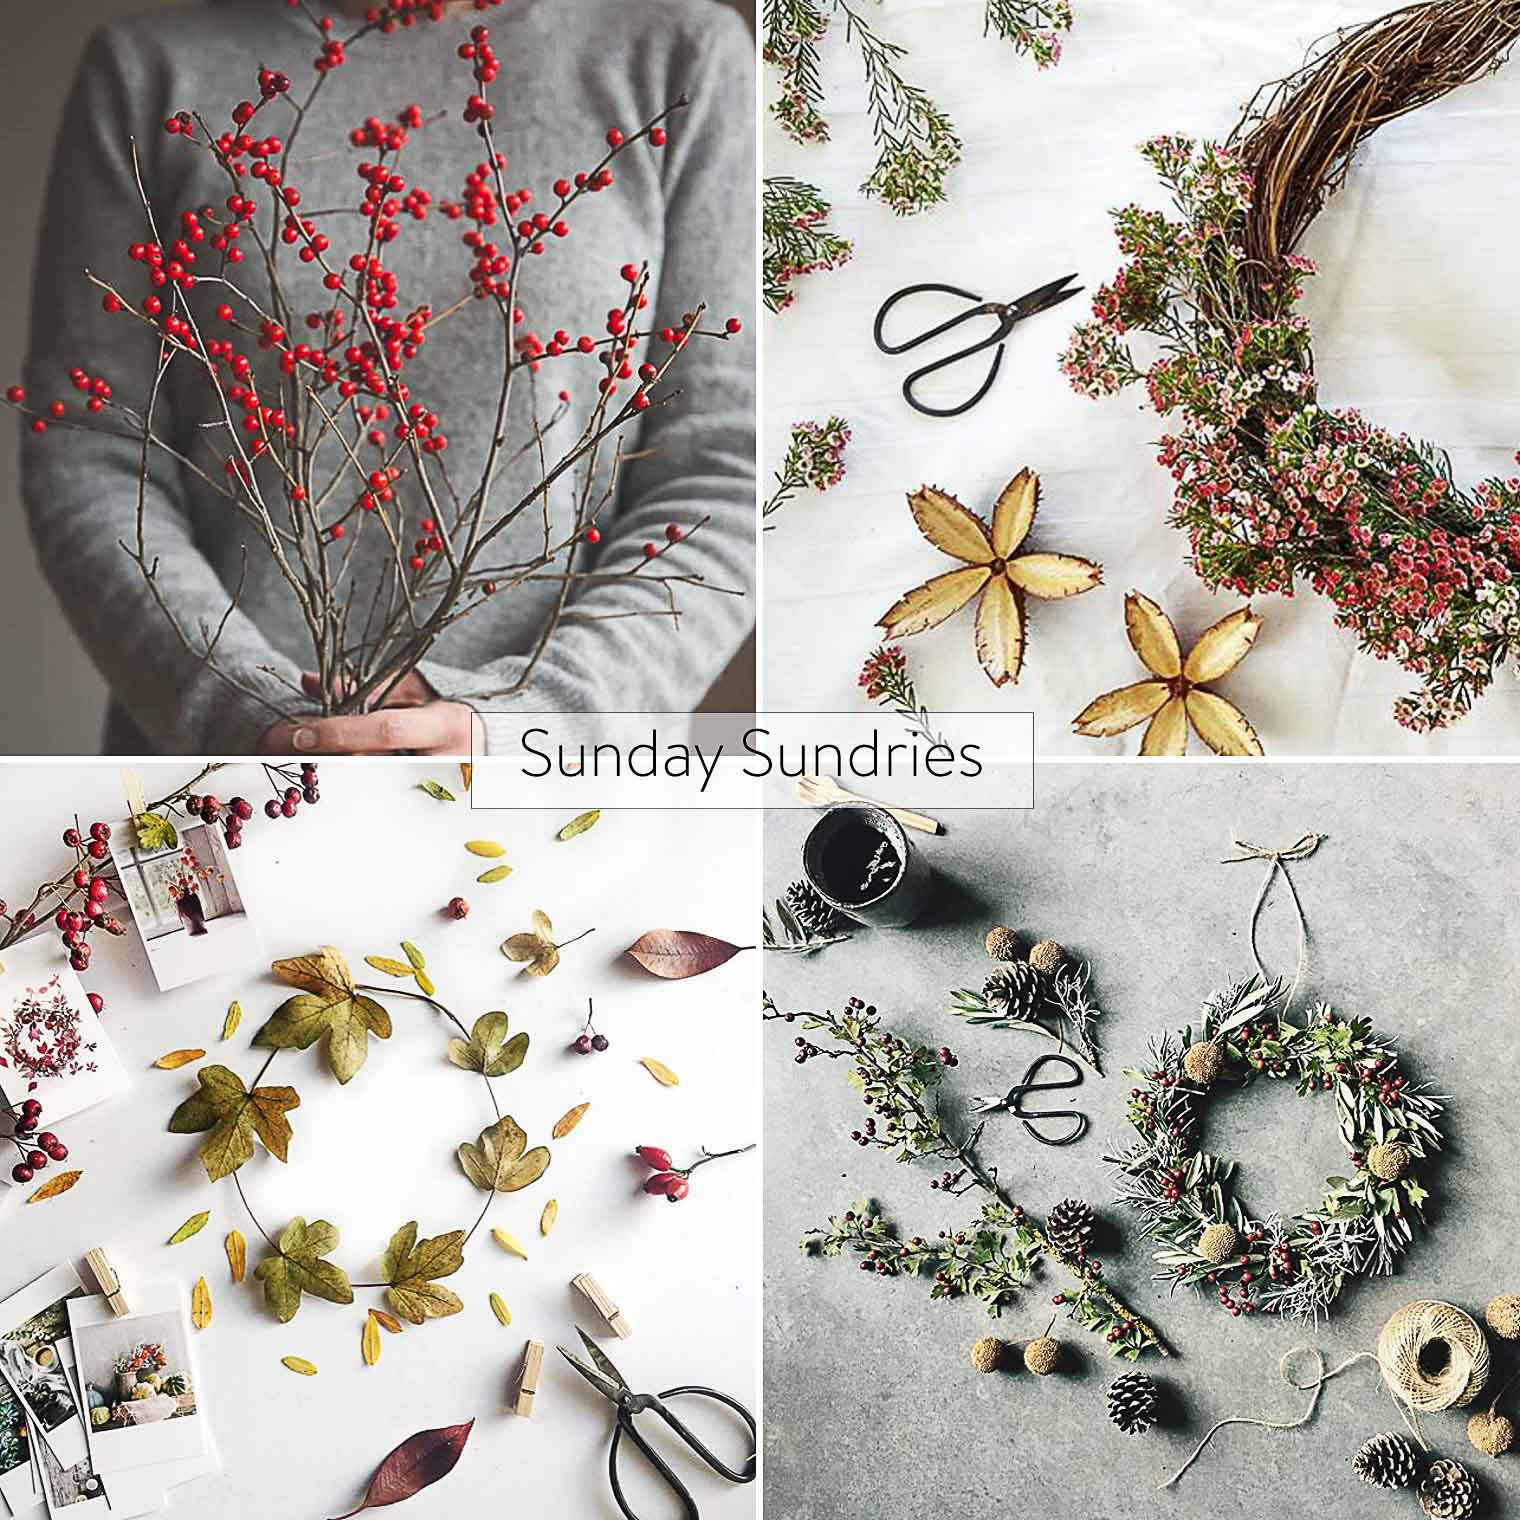 Sunday Sundries Feature November 20th, Keeping With the Times